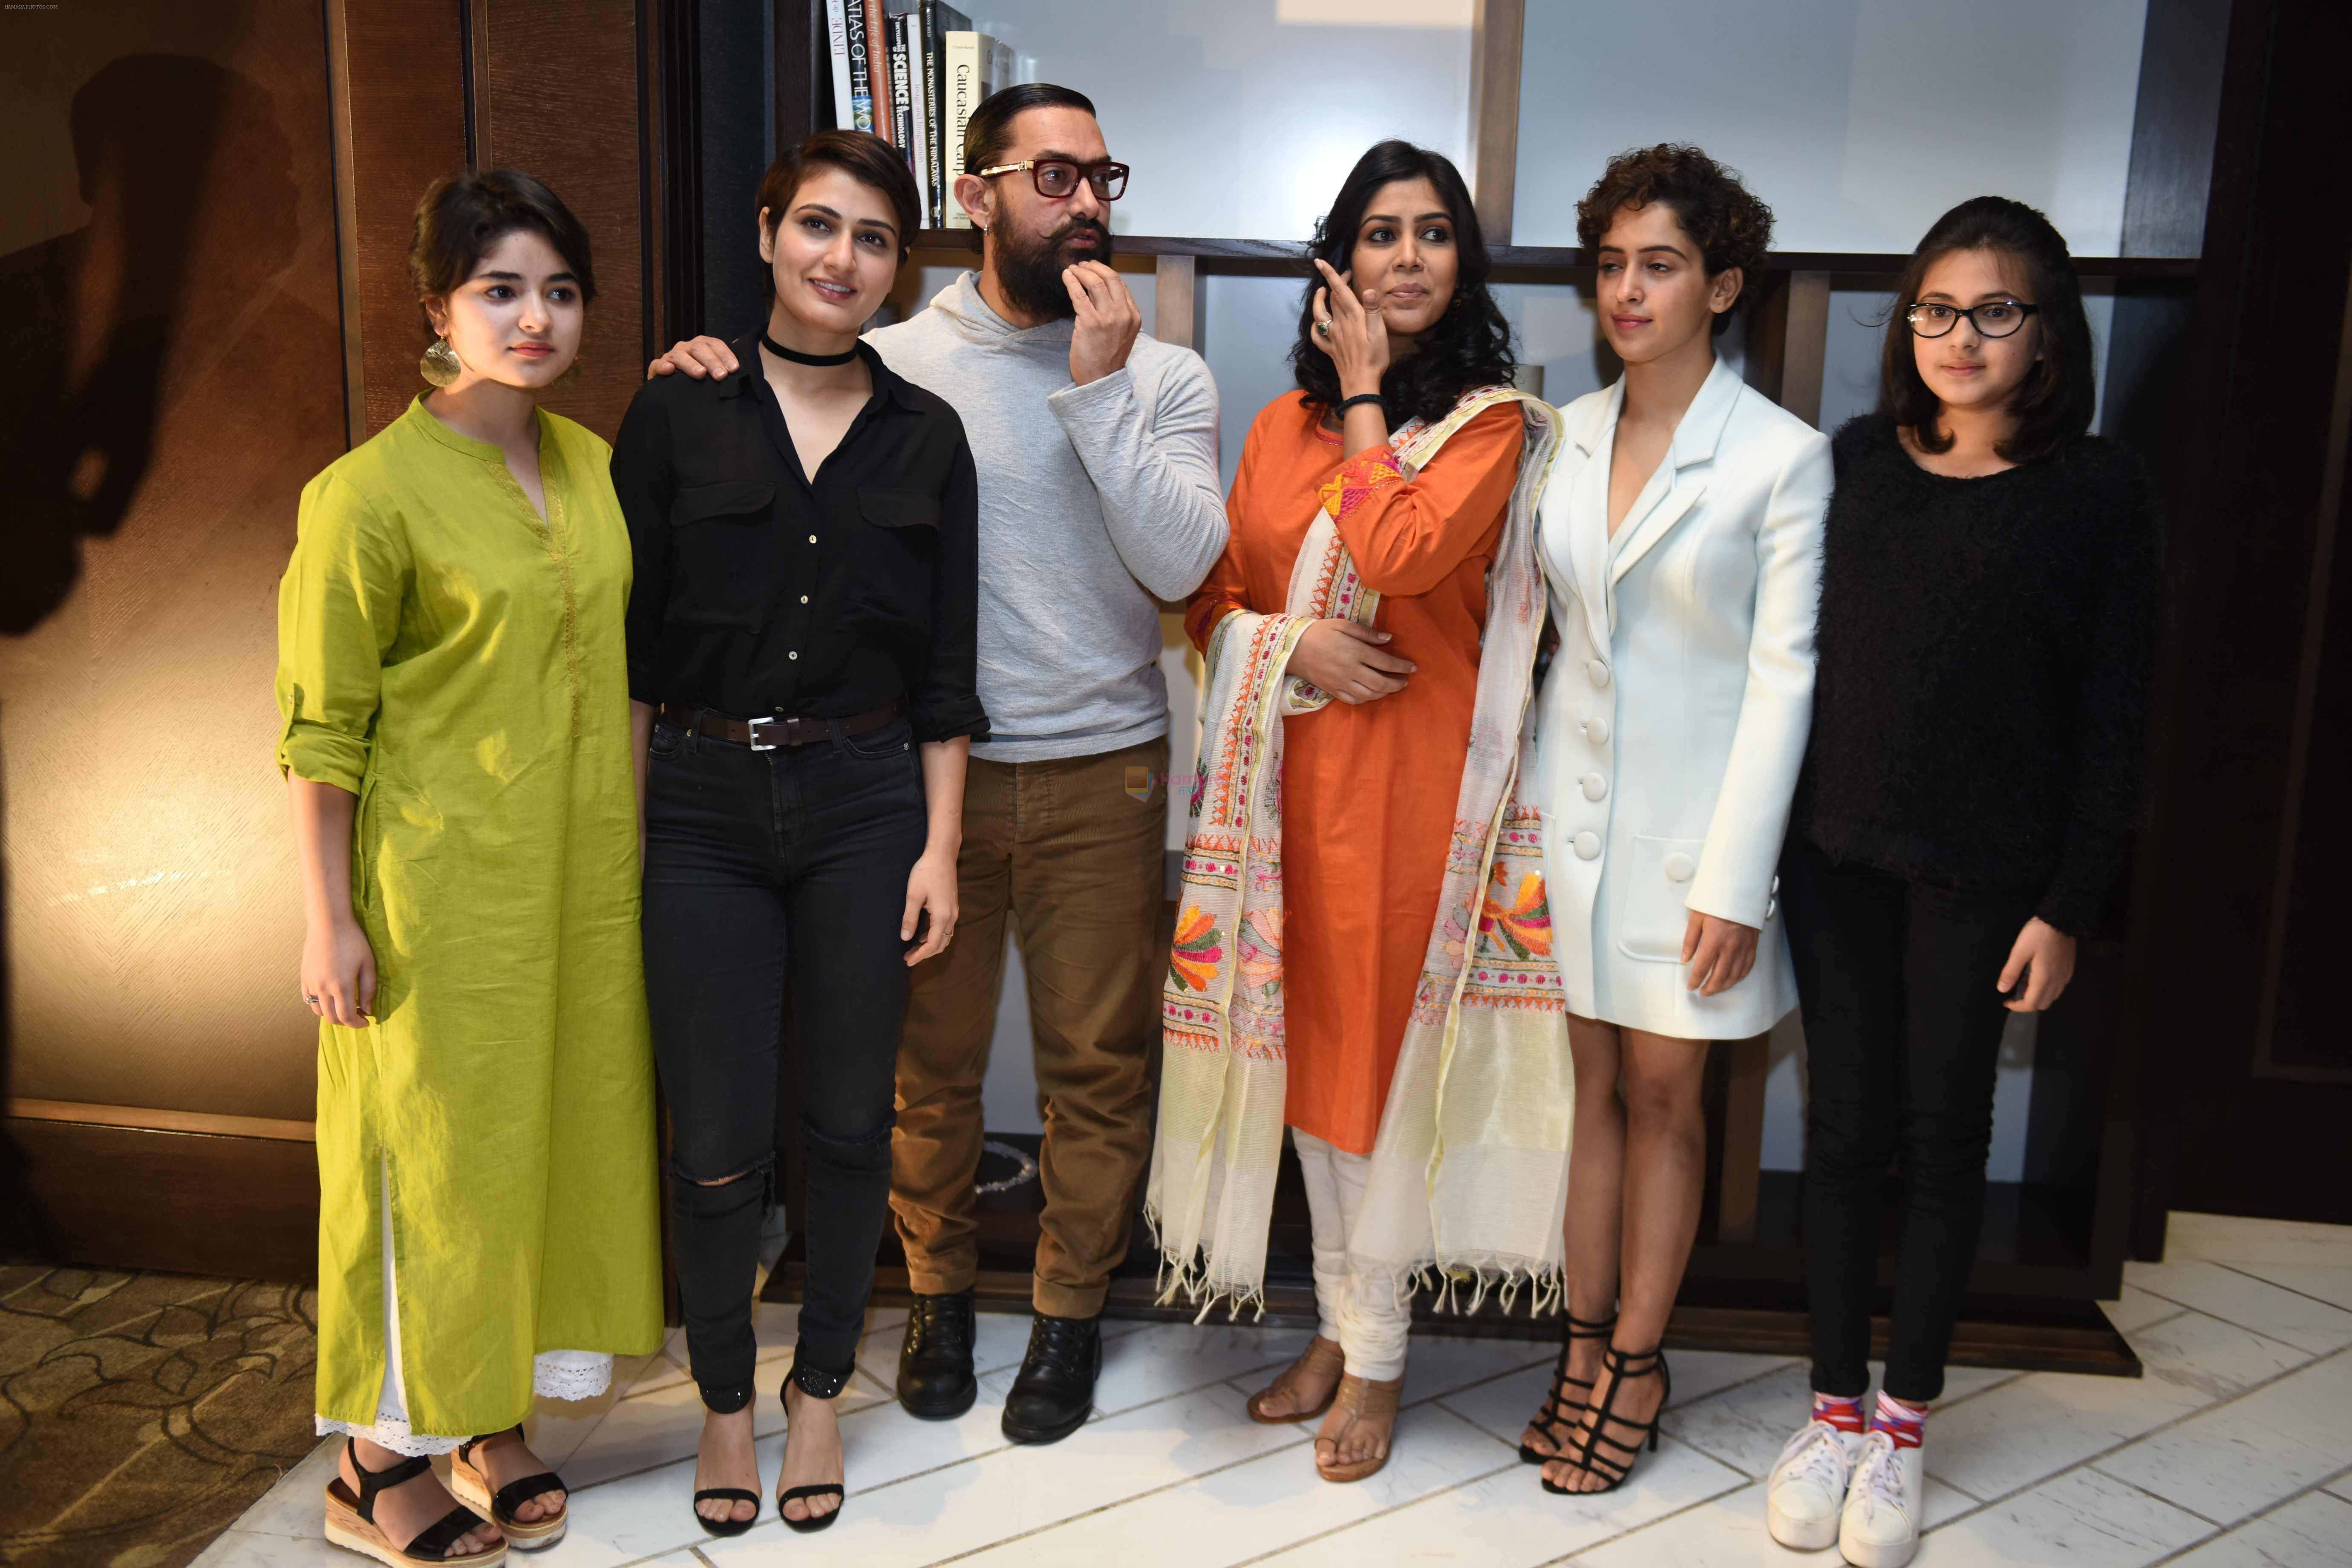 Aamir Khan, Sakshi Tanwar, Fatima Sana Shaikh, Sanya Malhotra with Dangal Team in Delhi on 26th Dec 2016